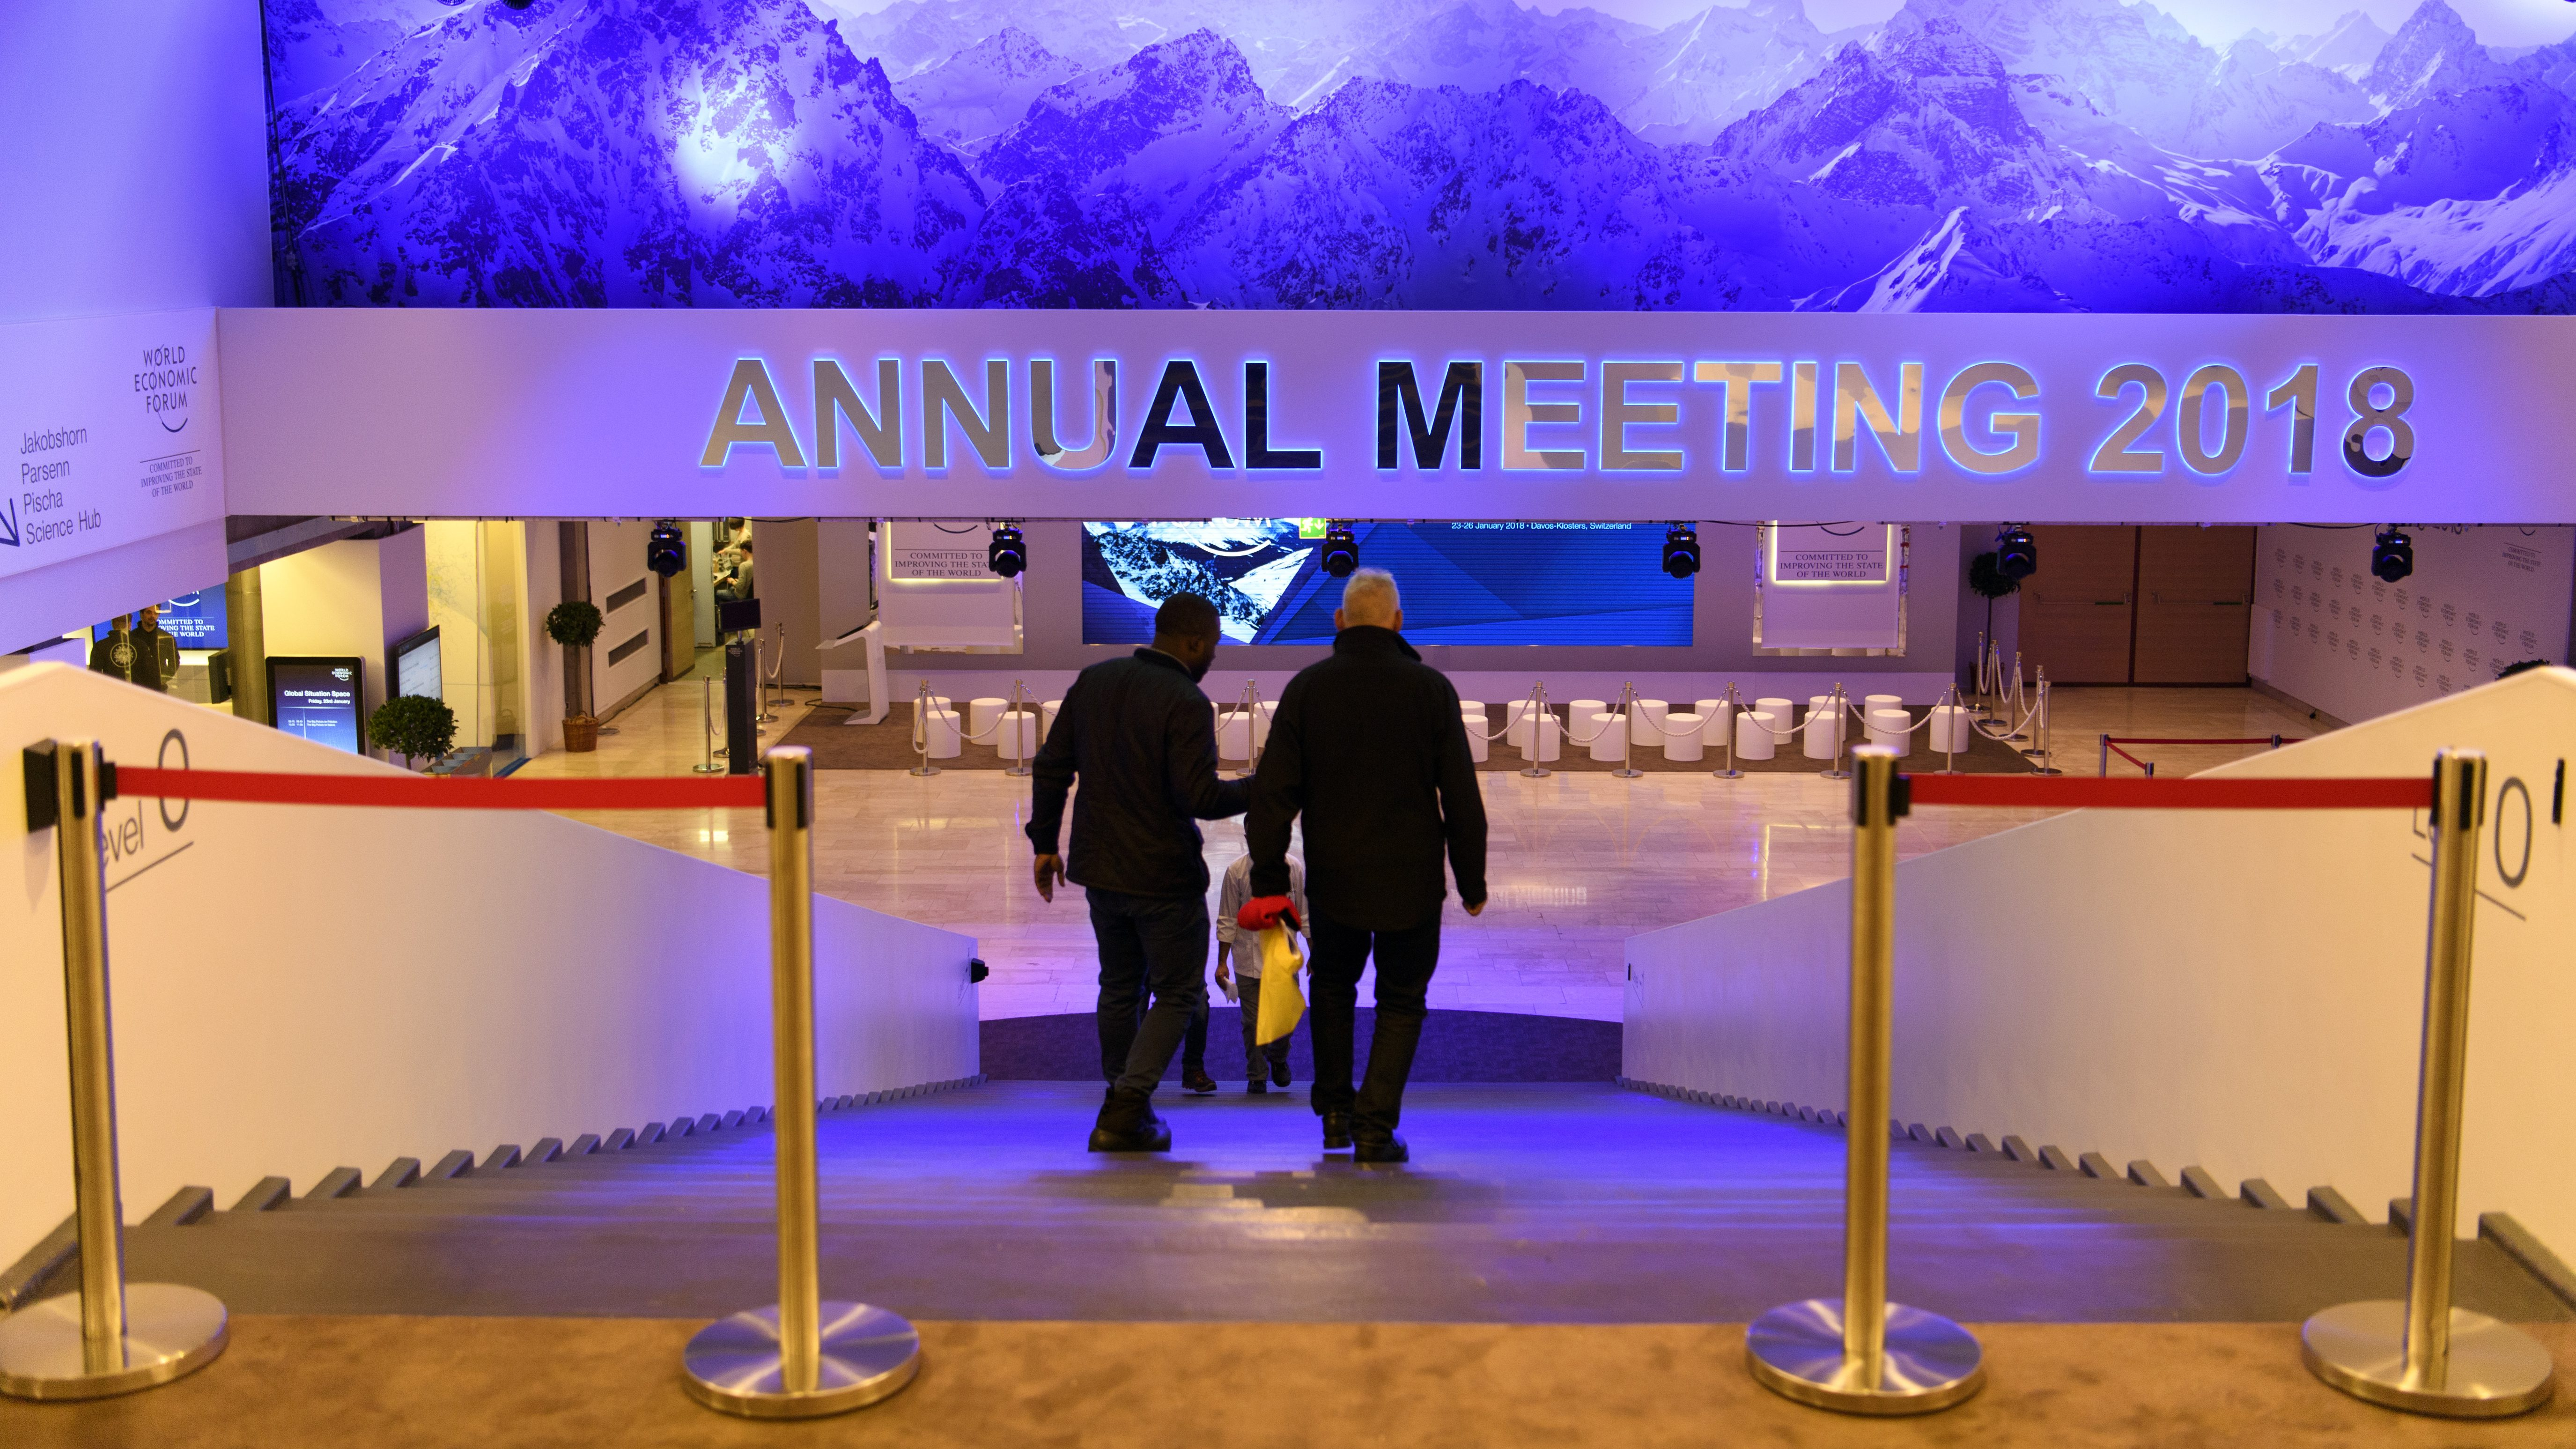 Workers walk inside the Congress Centre two days prior to the 48th Annual Meeting of the World Economic Forum (WEF), in Davos, Switzerland, 21 January 2018. The meeting brings together enterpreneurs, scientists, chief executive and political leaders in Davos from 23 to 26 January.